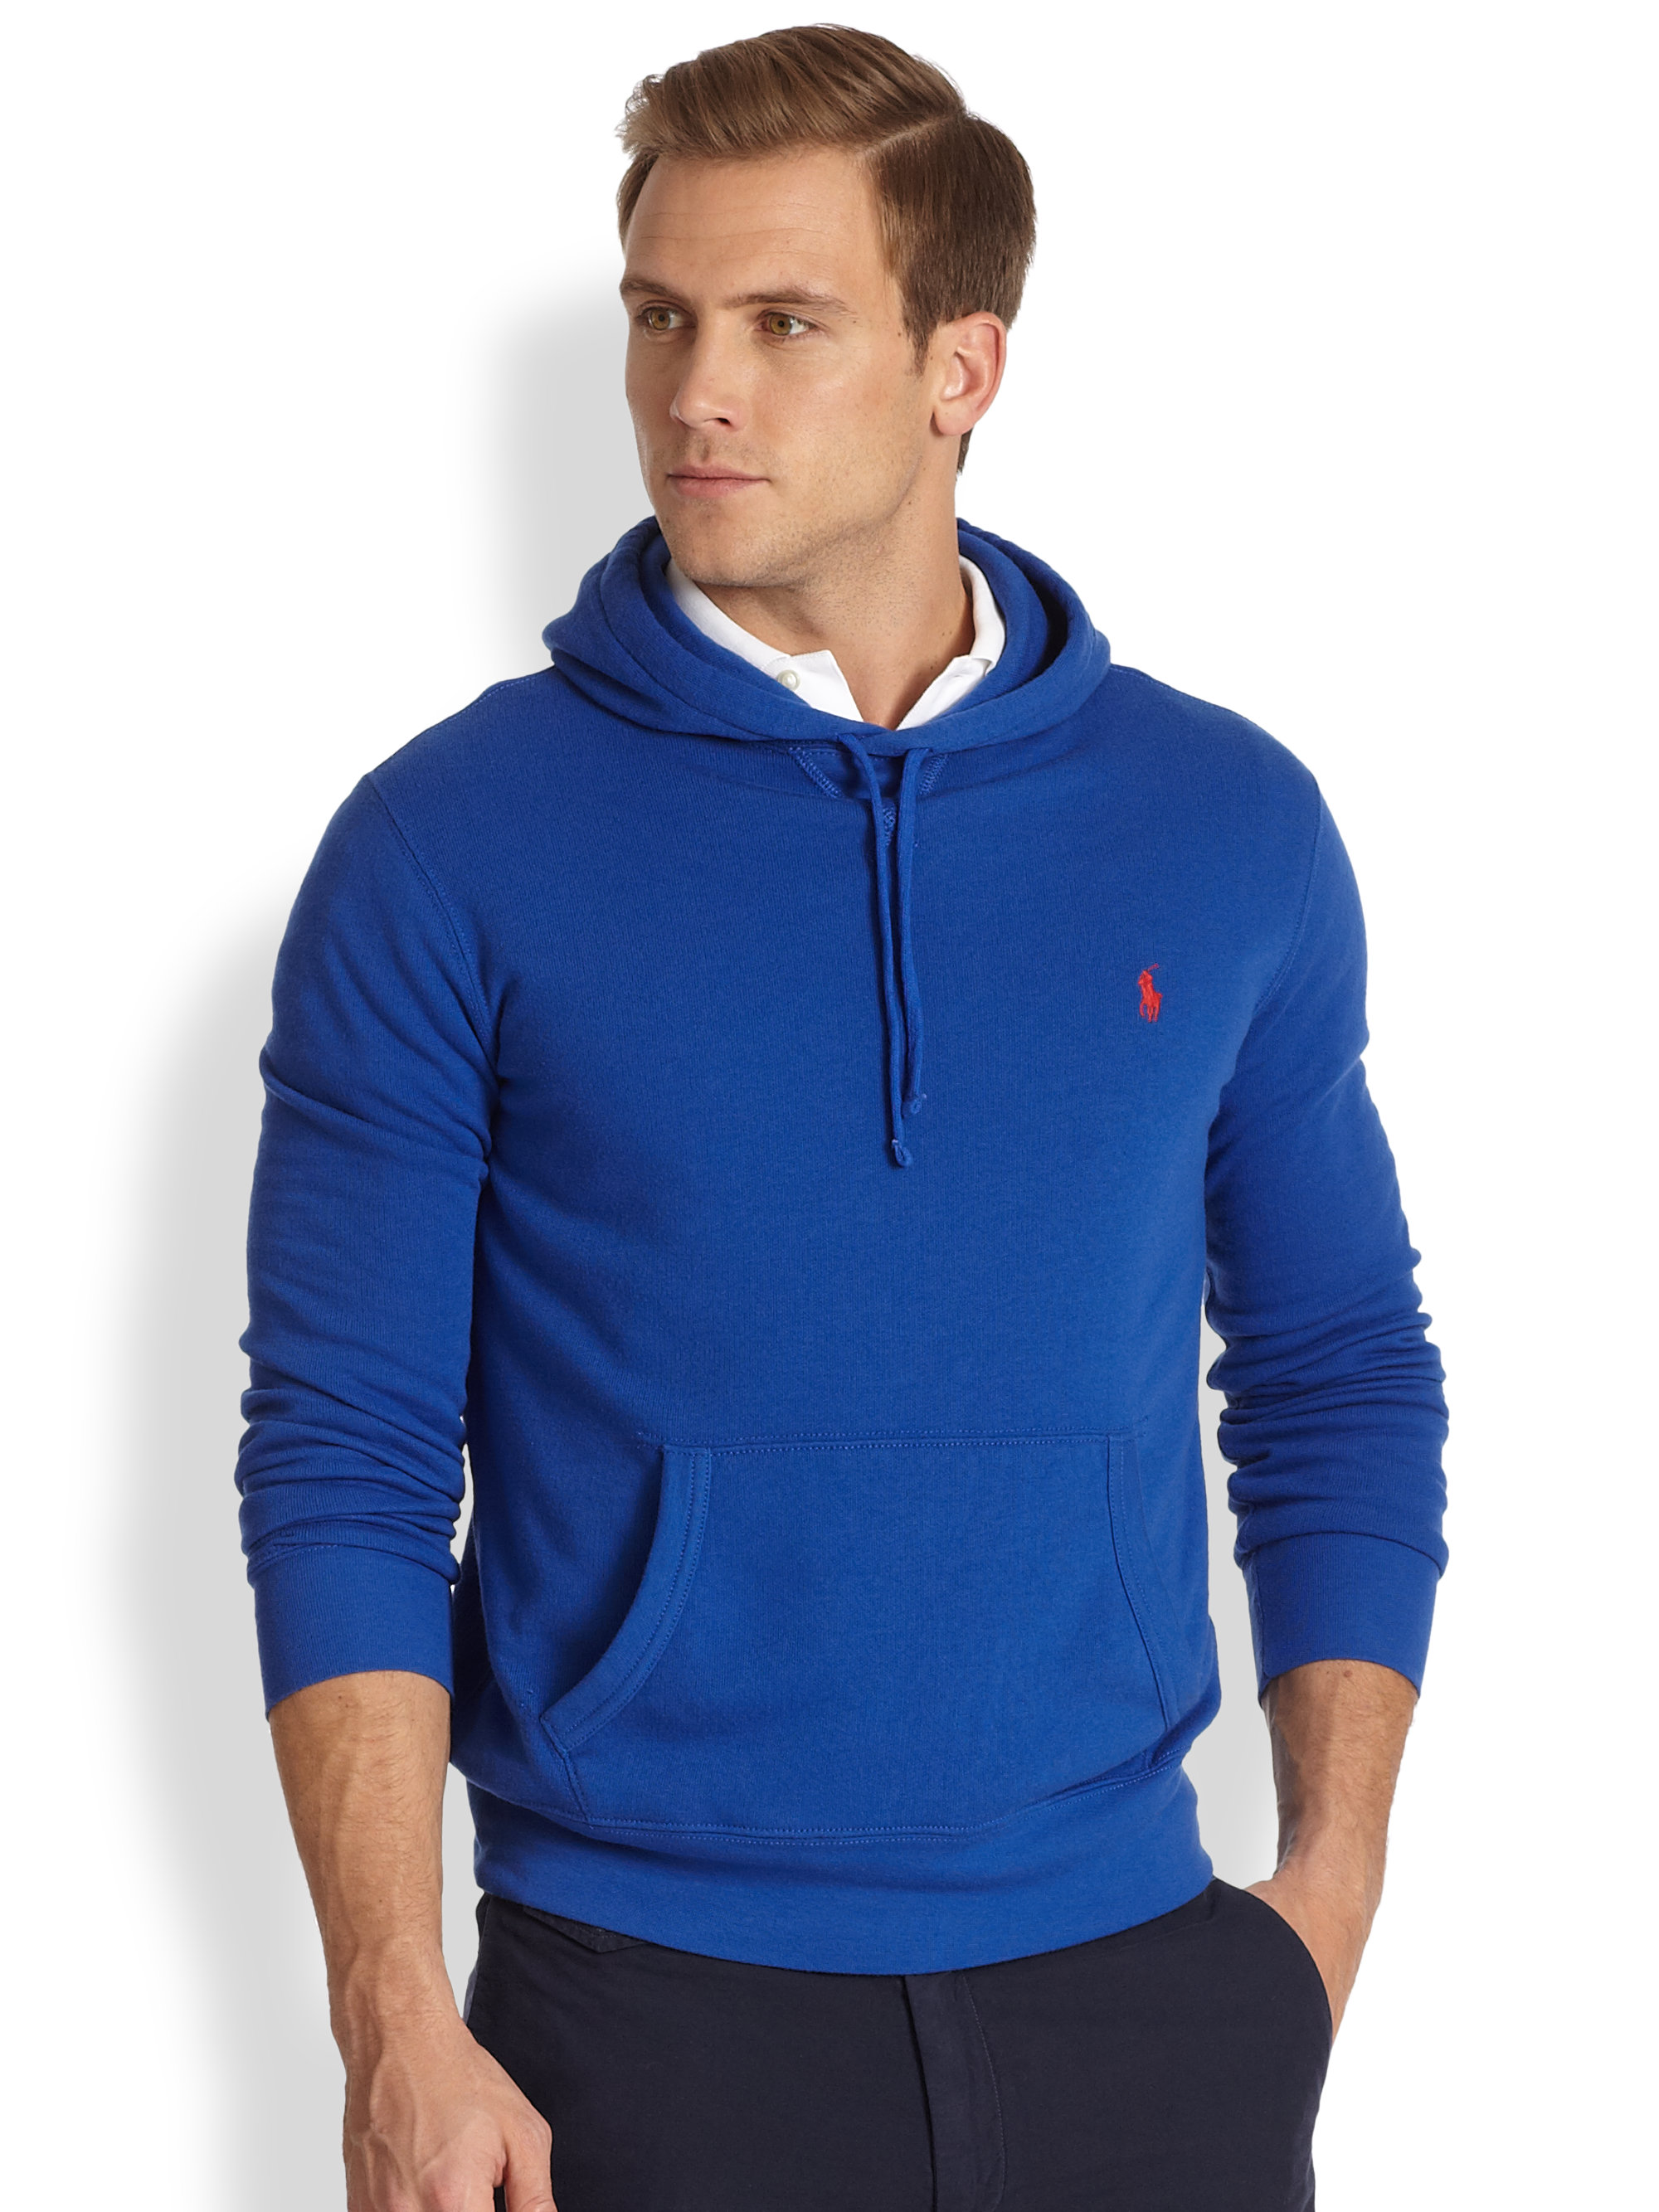 polo ralph lauren atlantic terry hooded pullover in red for men lyst. Black Bedroom Furniture Sets. Home Design Ideas